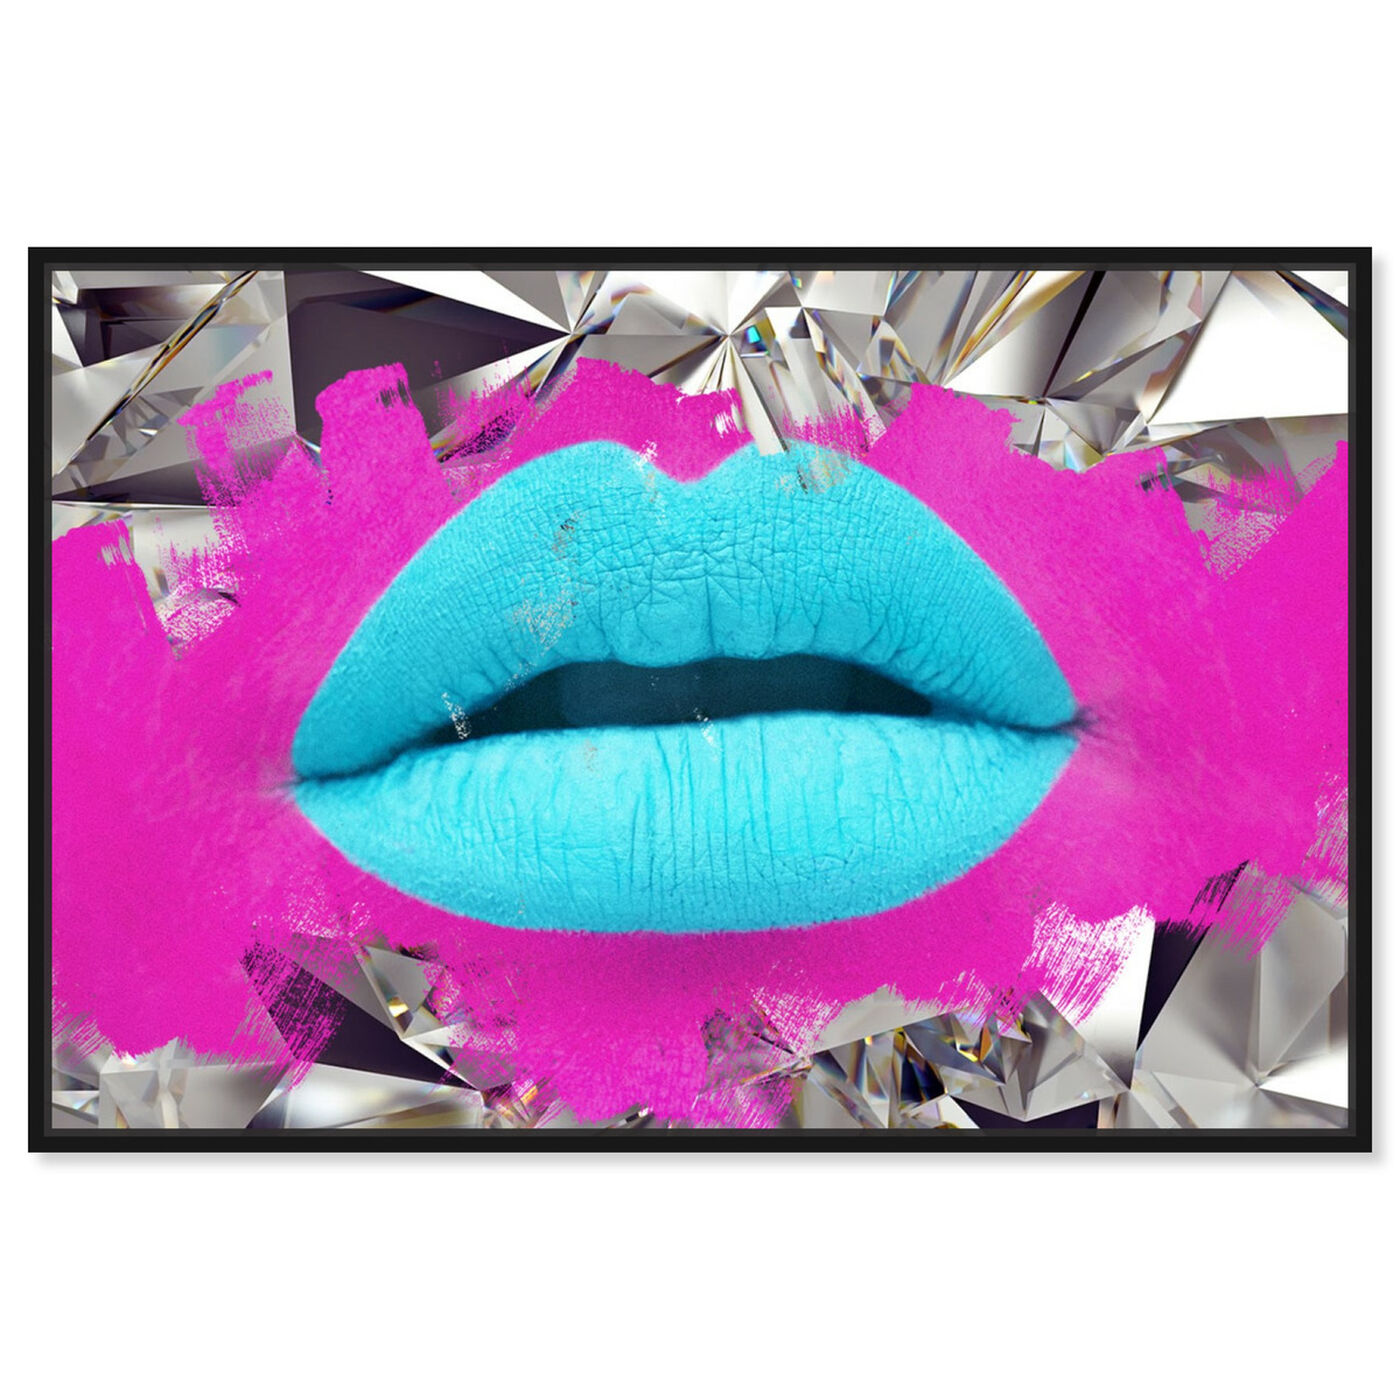 Front view of Androkiss featuring fashion and glam and lips art.